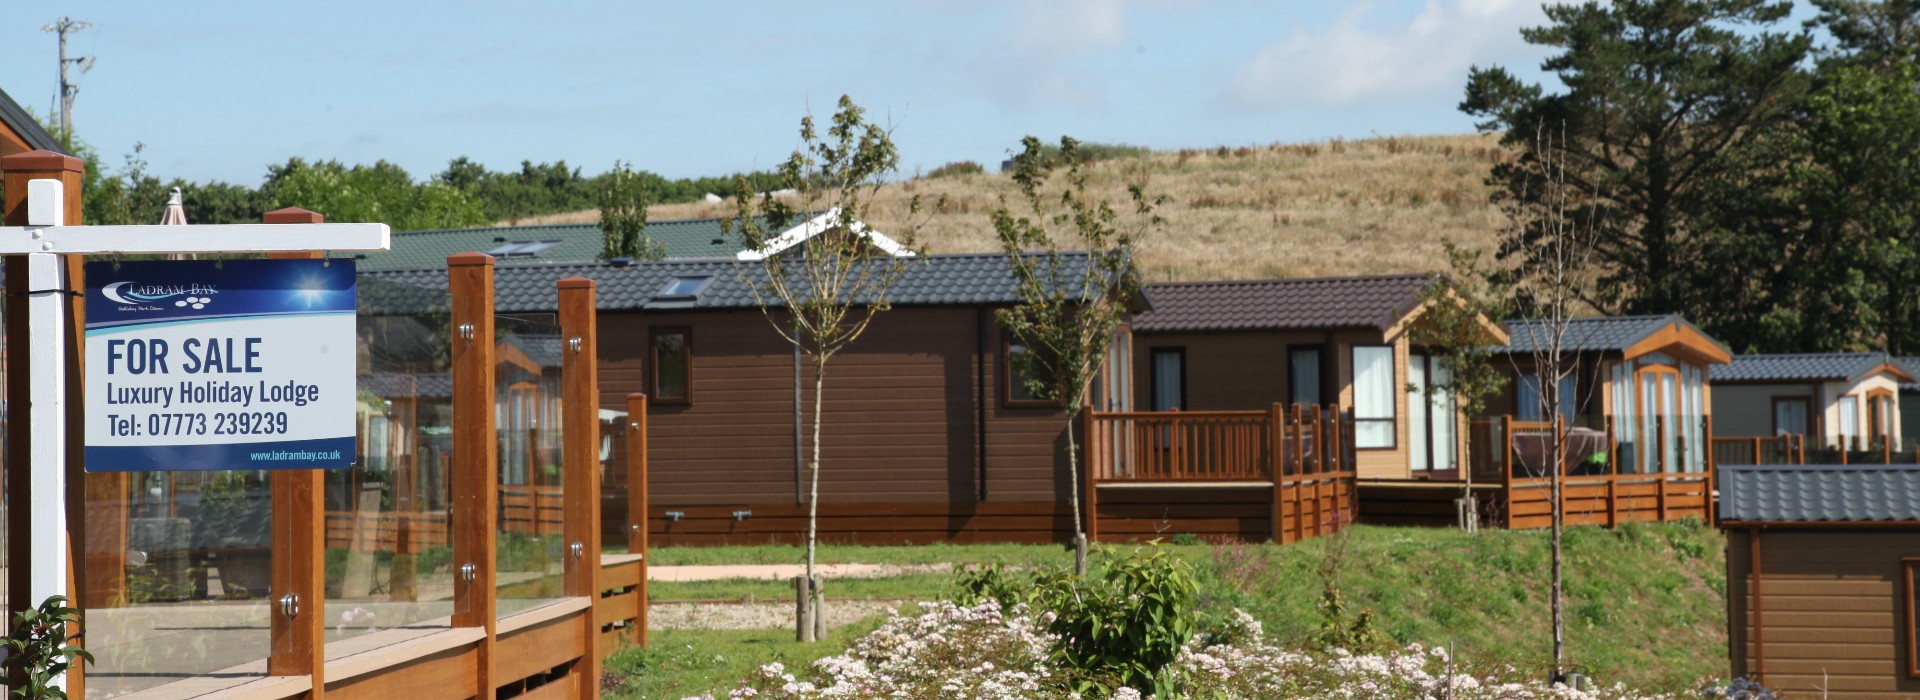 devon holiday homes for sale ladram bay holiday park